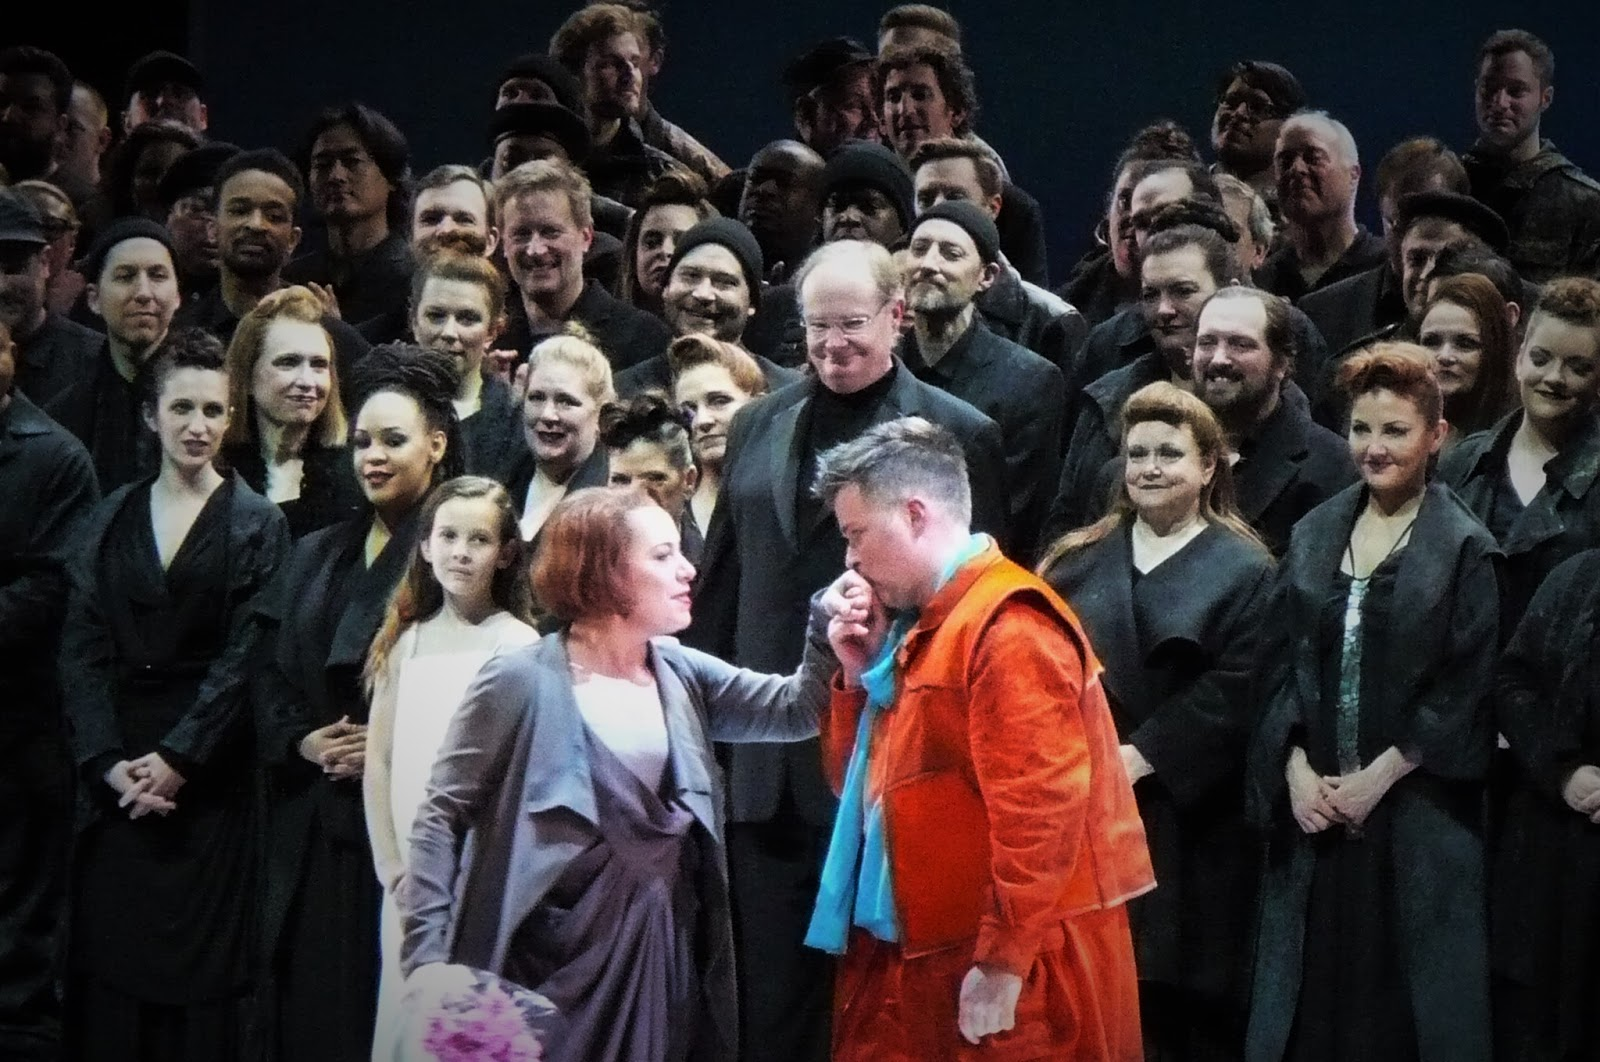 IN PERFORMANCE: Soprano NINA STEMME (Brünnhilde, center left) and tenor DANIEL BRENNA (Siegried, center right) during curtain calls for FRANCESCA ZAMBELLO's production of Richard Wagner's GÖTTERDÄMMERUNG at Washington National Opera, 22 May 2016 [Photo by the author]